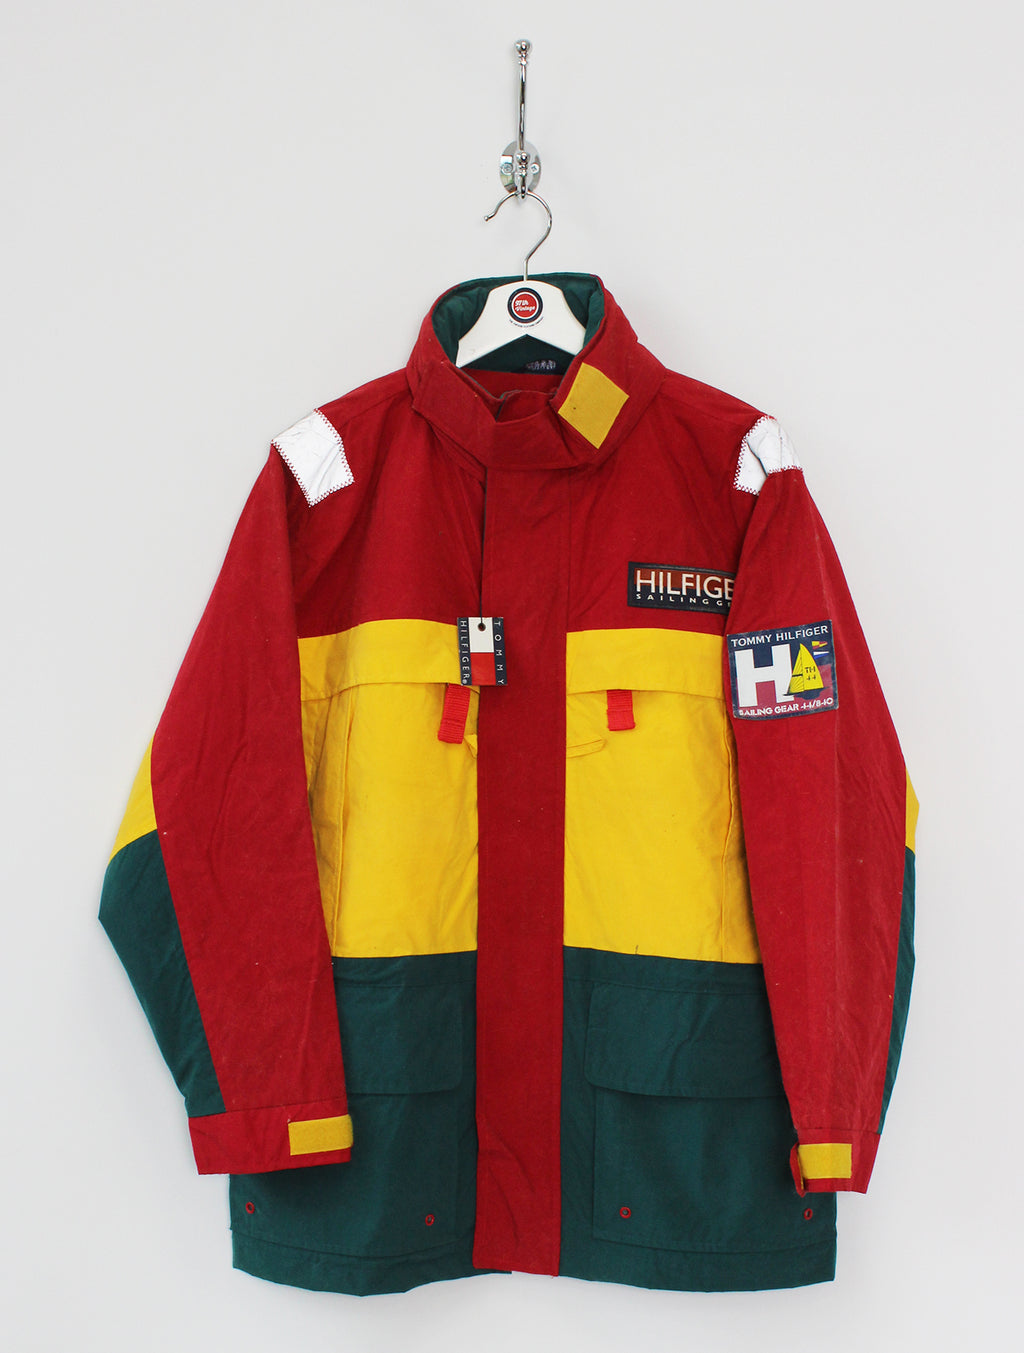 BNWT Tommy Hilfiger Sailing Gear Jacket (M)